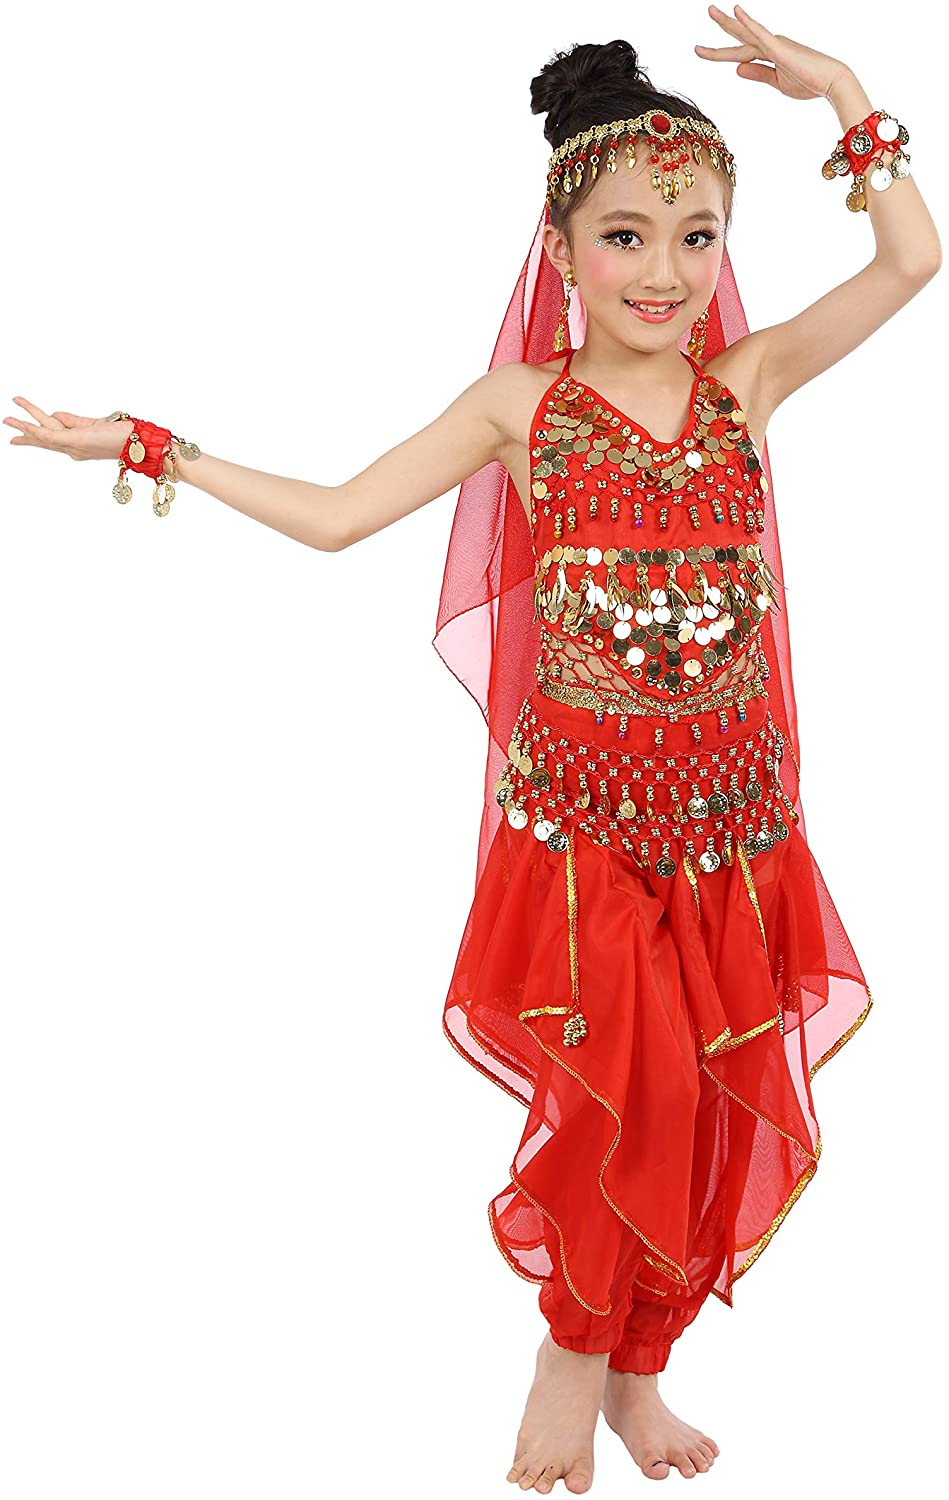 Maylong Girls Loose Pants Belly Dance Outfit Halloween Costume DW07(Medium, red)